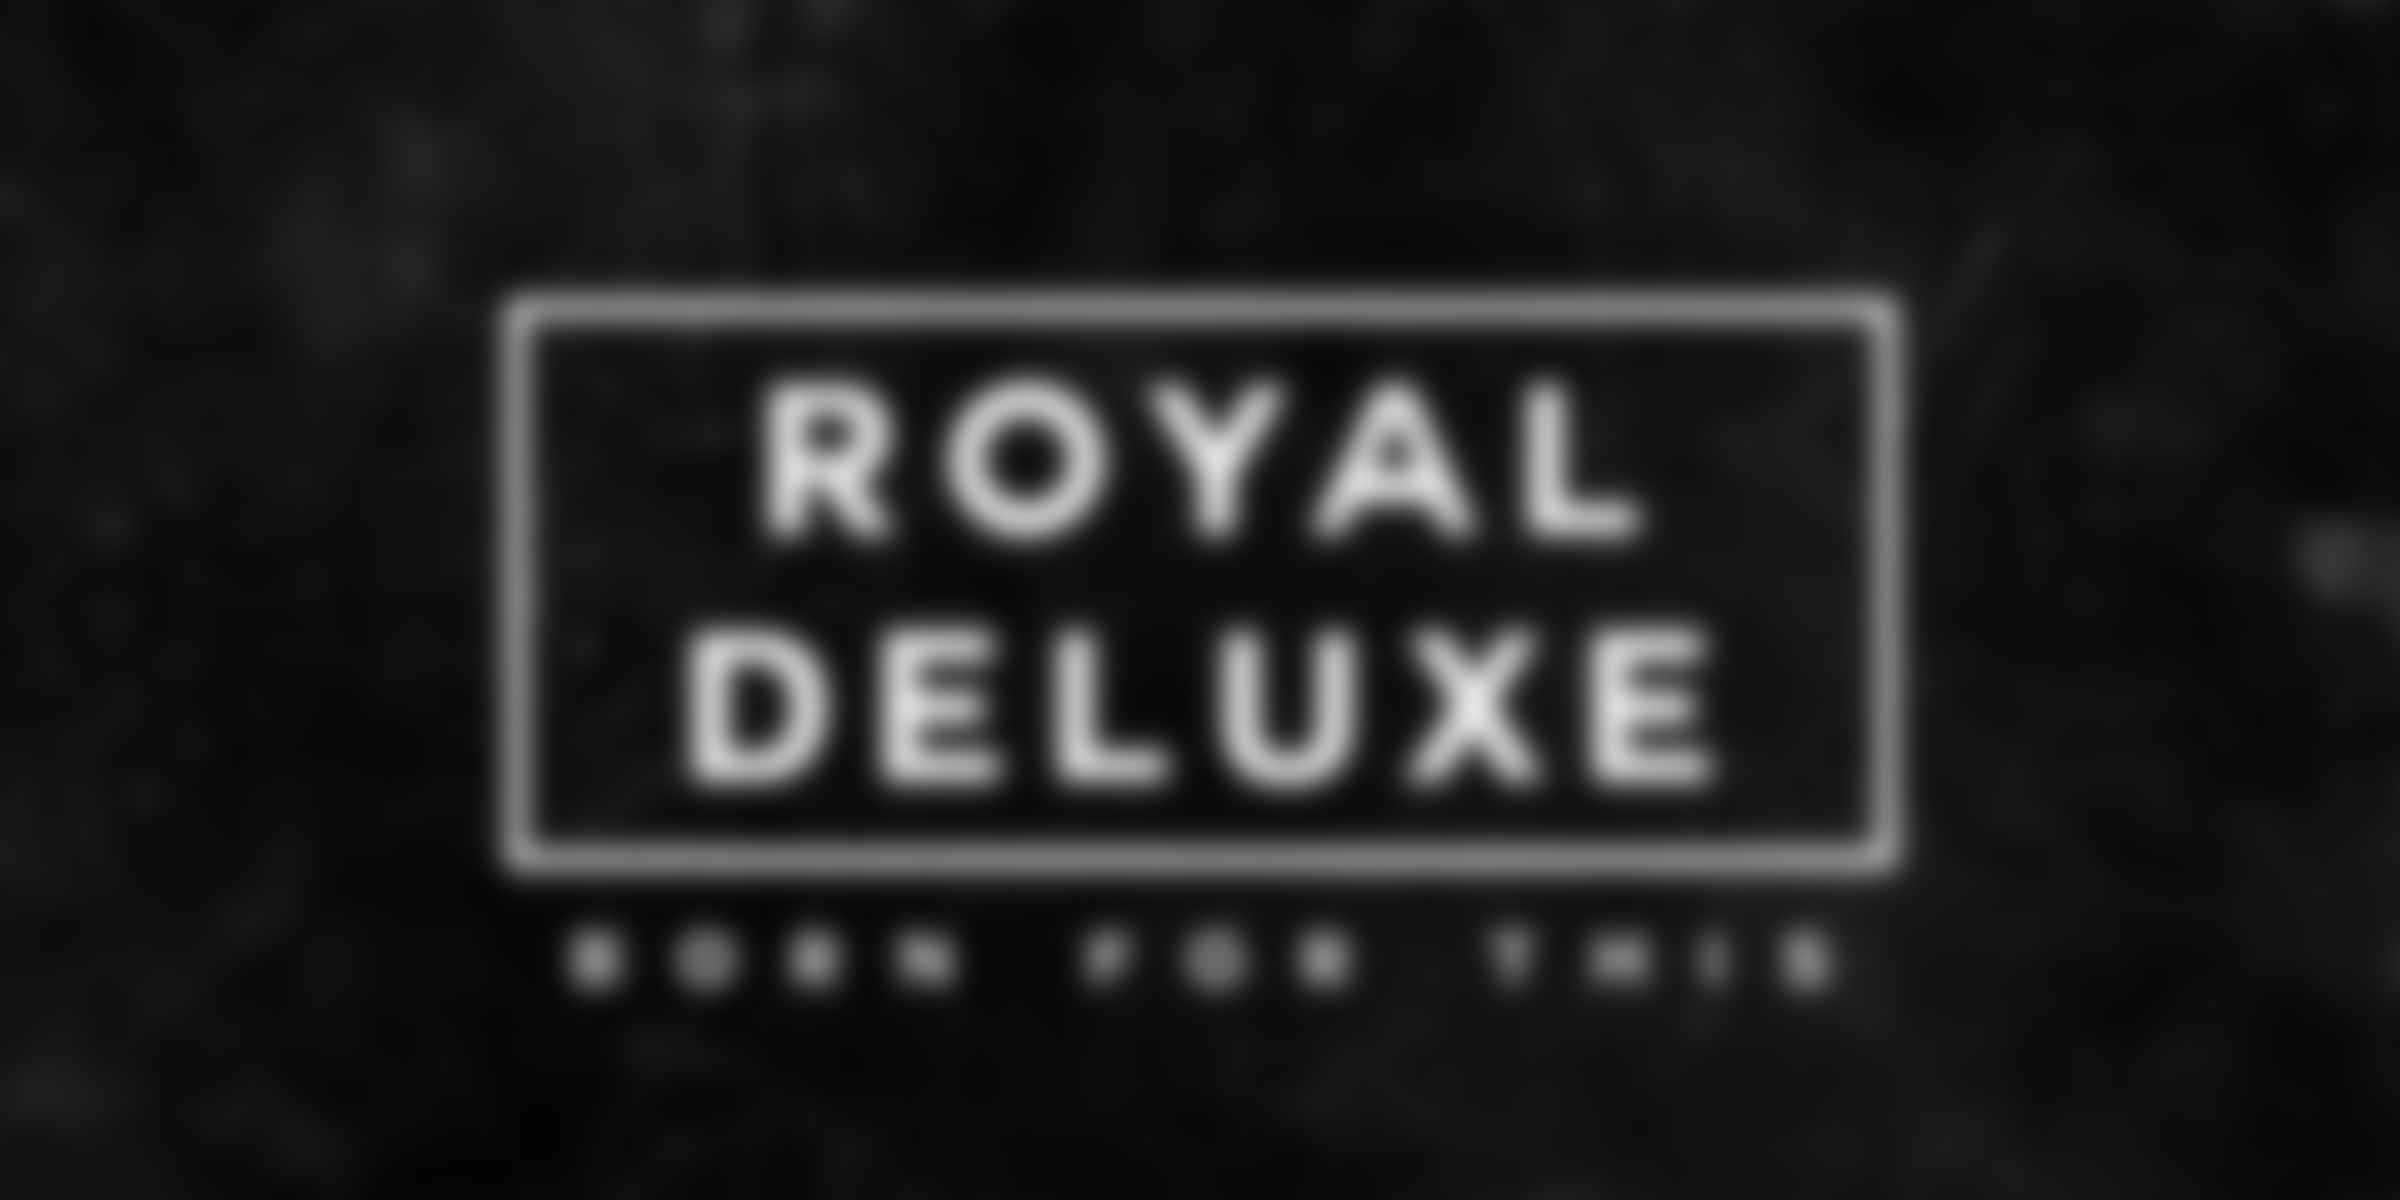 Born For This by Royal Deluxe | Song License